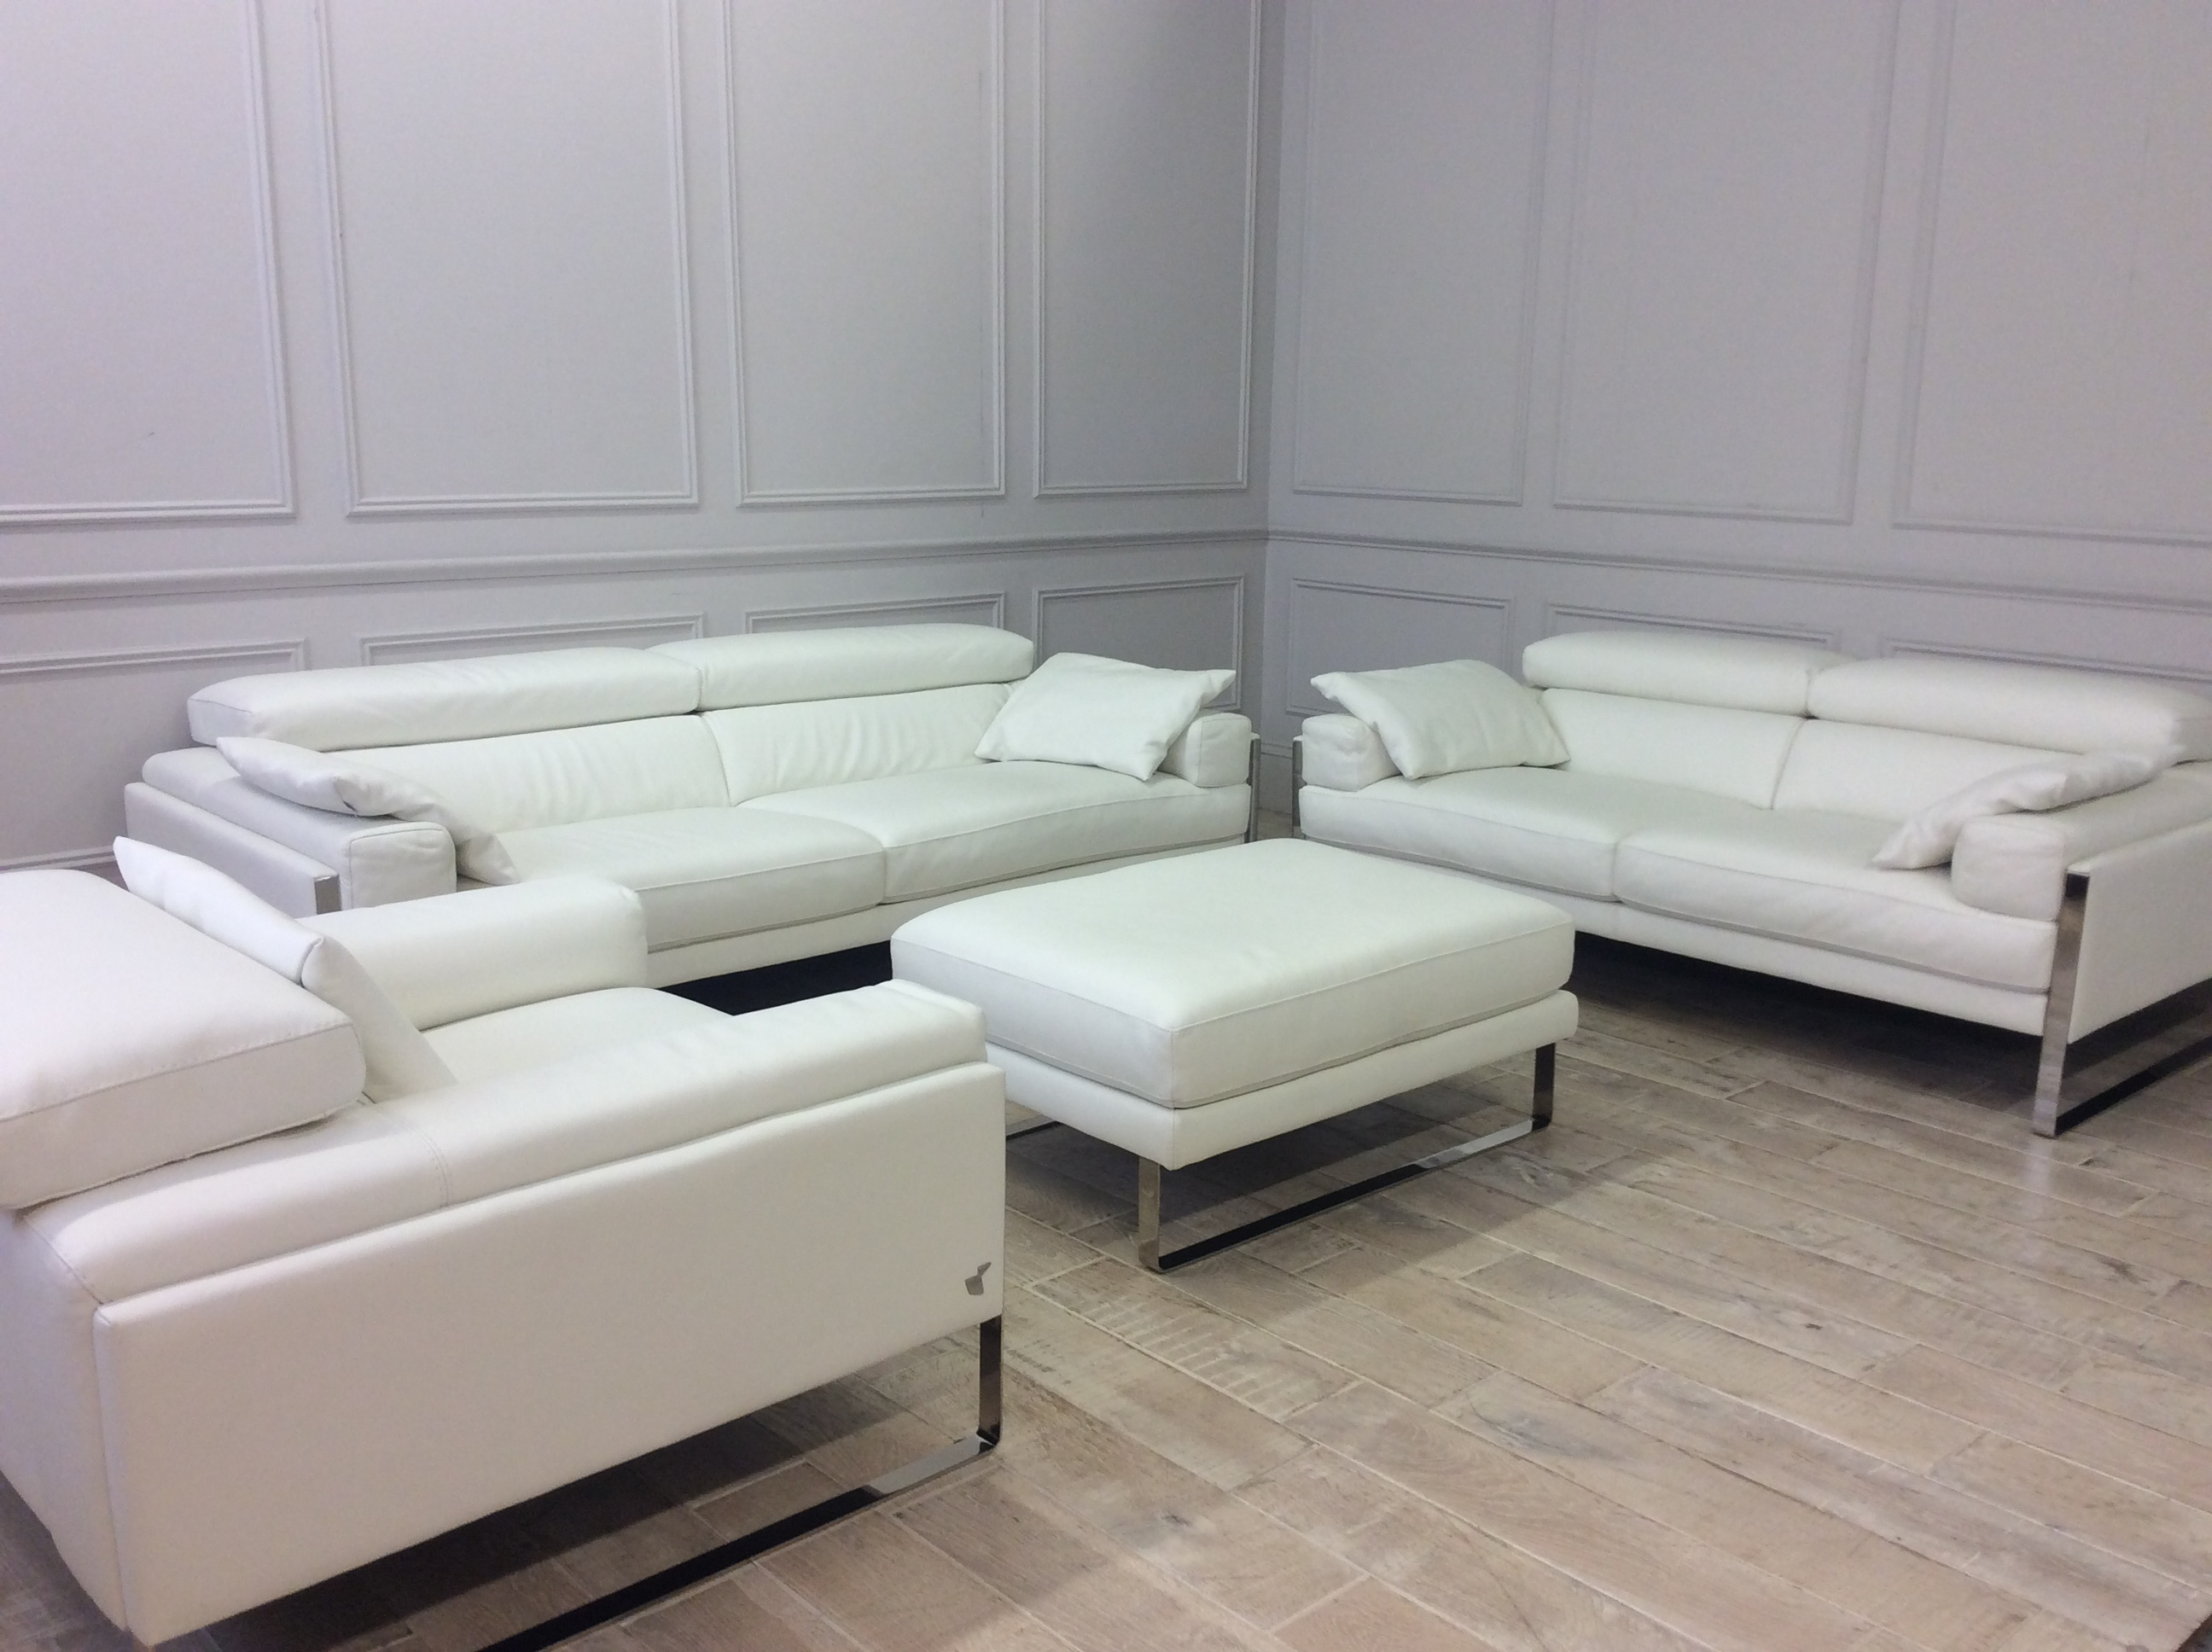 Product photograph showing Rocco Chair 2 Str Sofa 3 Str Sofa Footstool And Scatter Cushions In Bull 370 Bianco Puro Leather